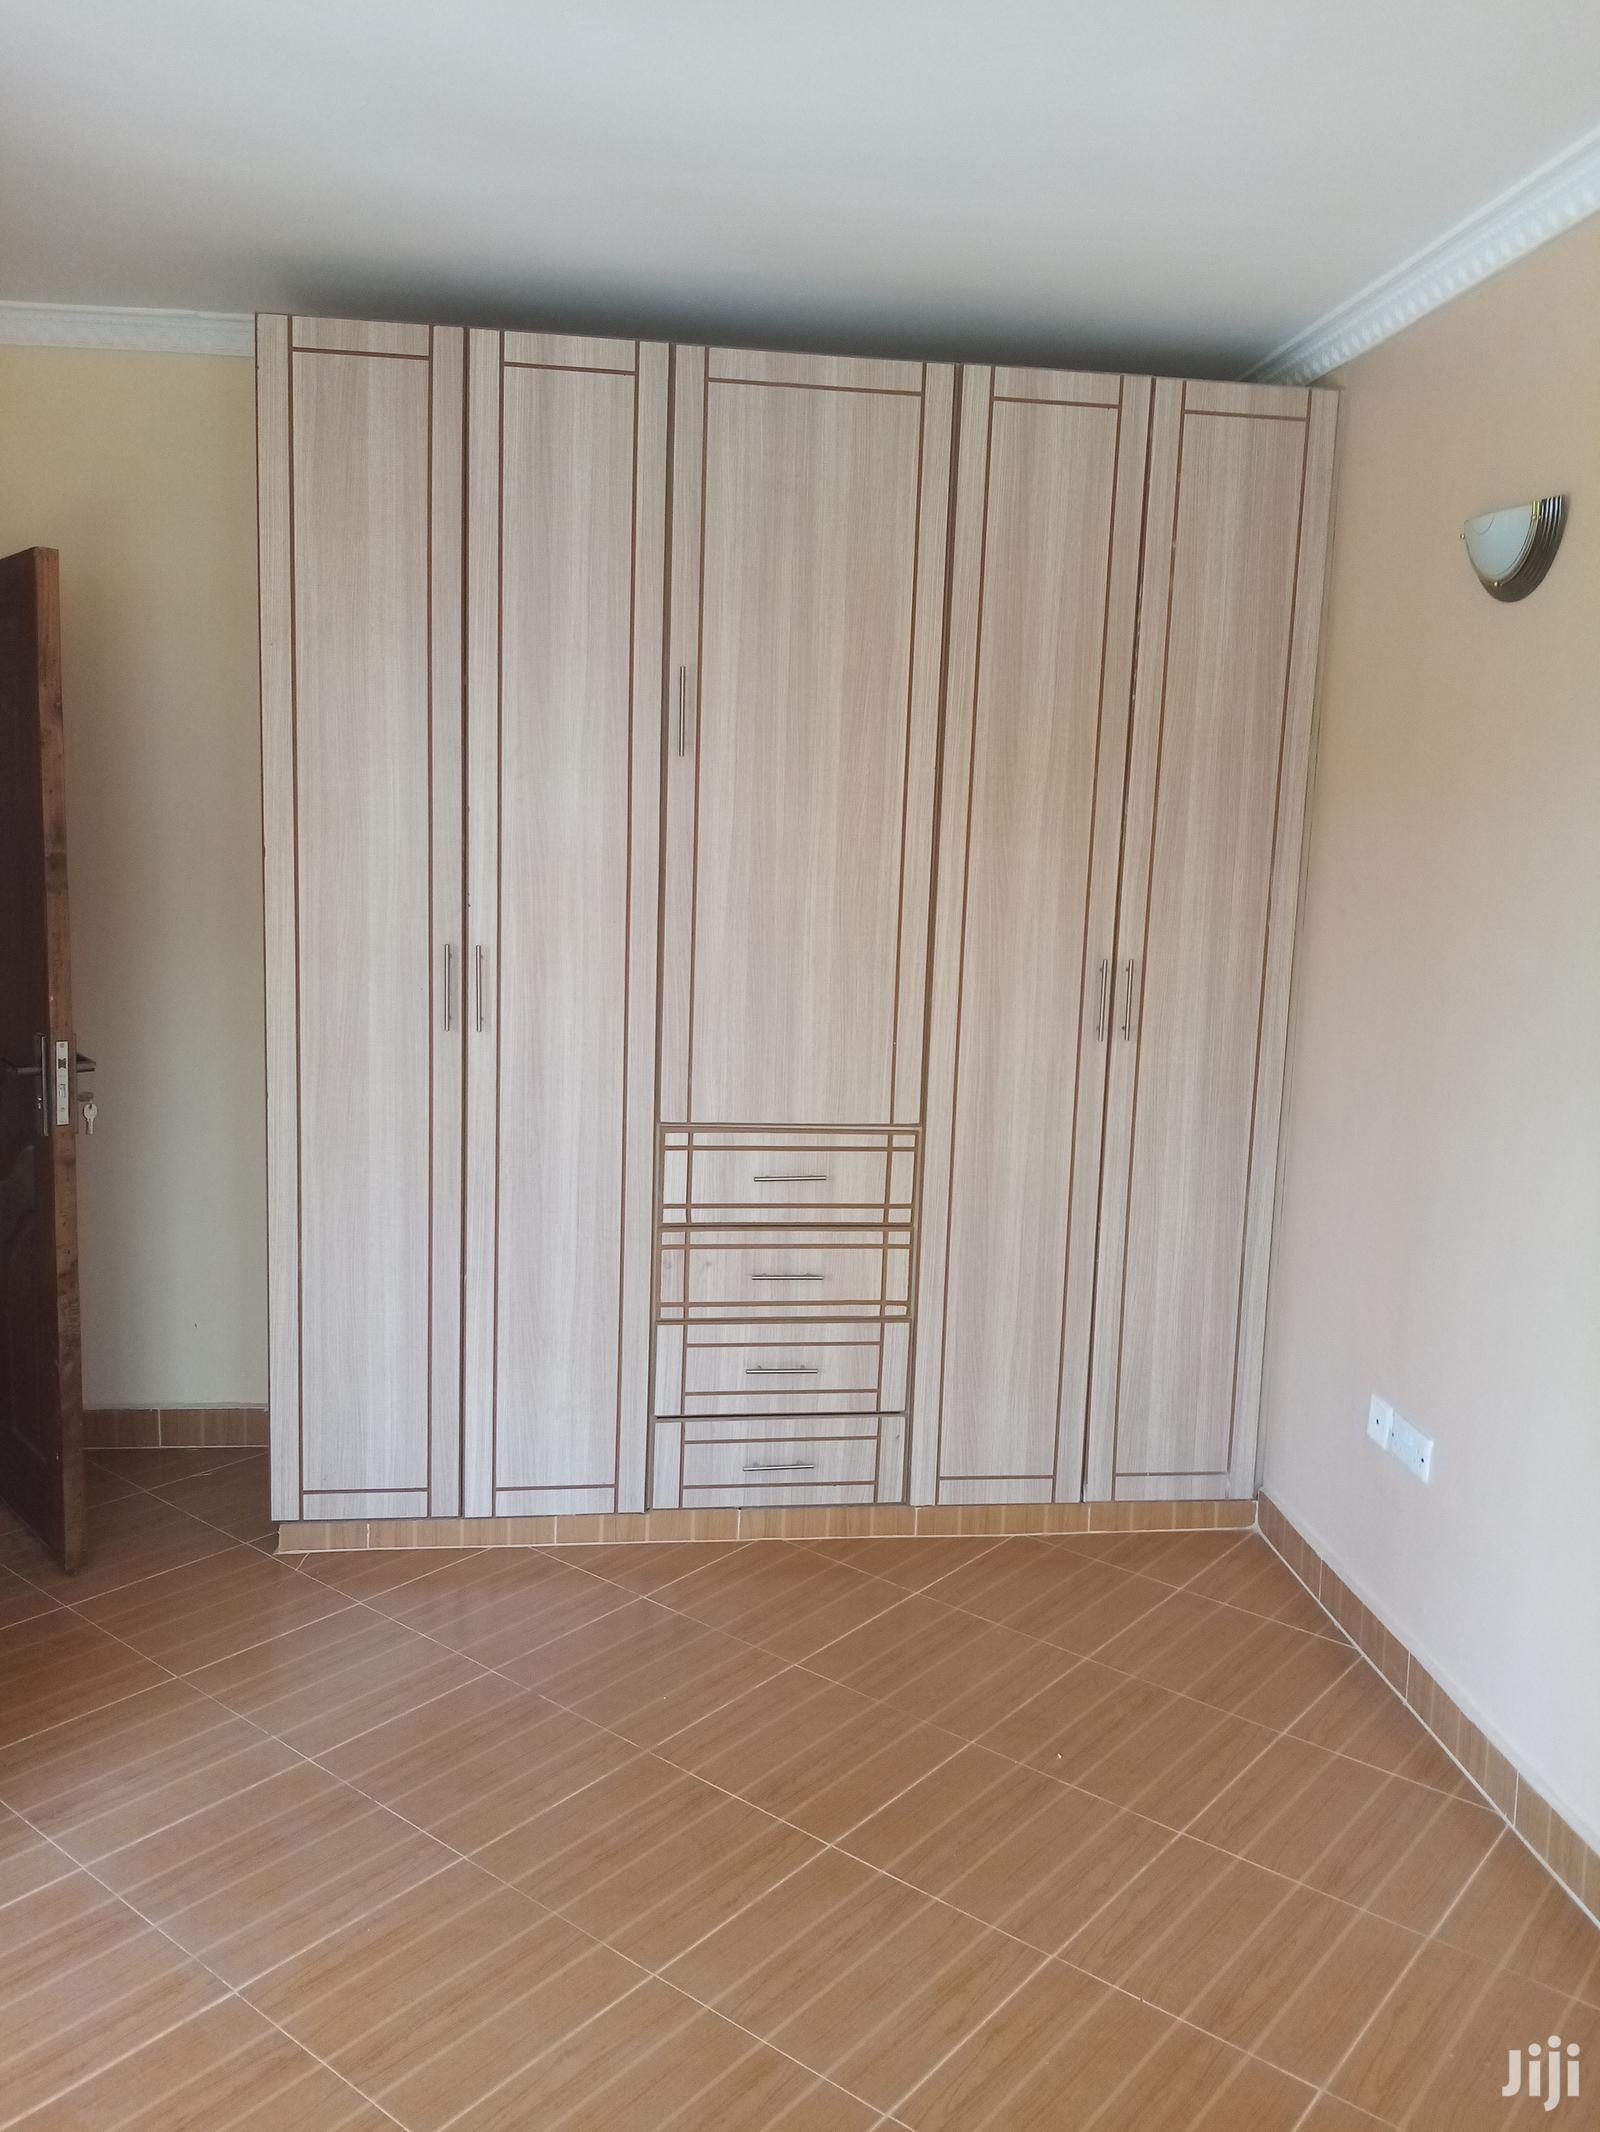 Very Spacious Newly Built House For Sale | Houses & Apartments For Sale for sale in Donholm, Nairobi, Kenya